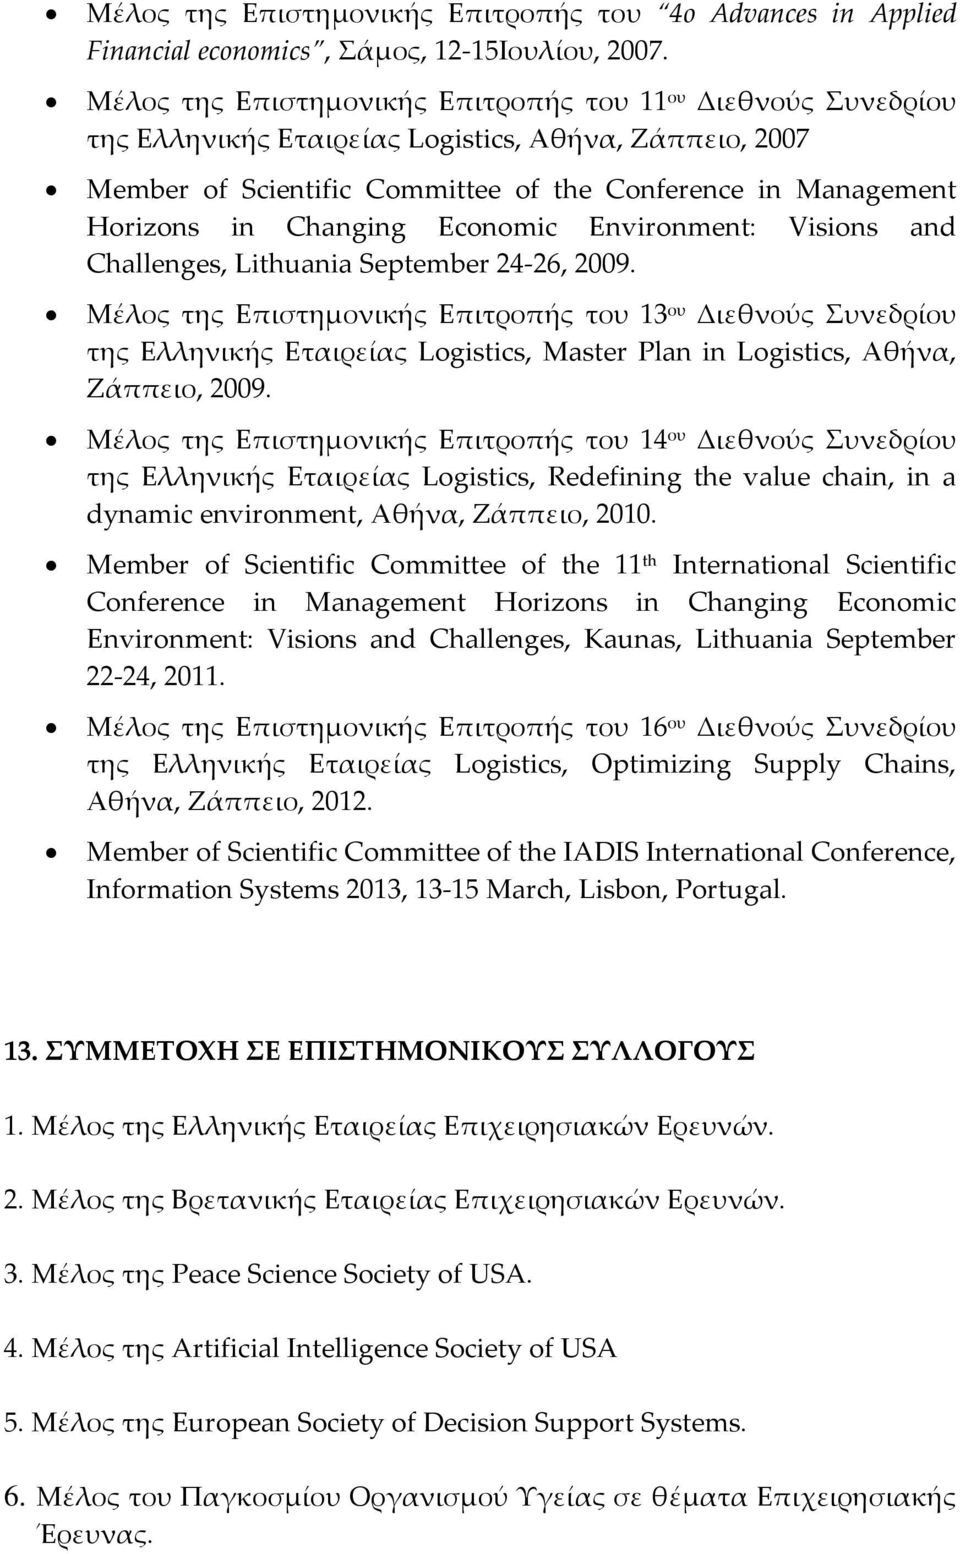 Changing Economic Environment: Visions and Challenges, Lithuania September 24-26, 2009.